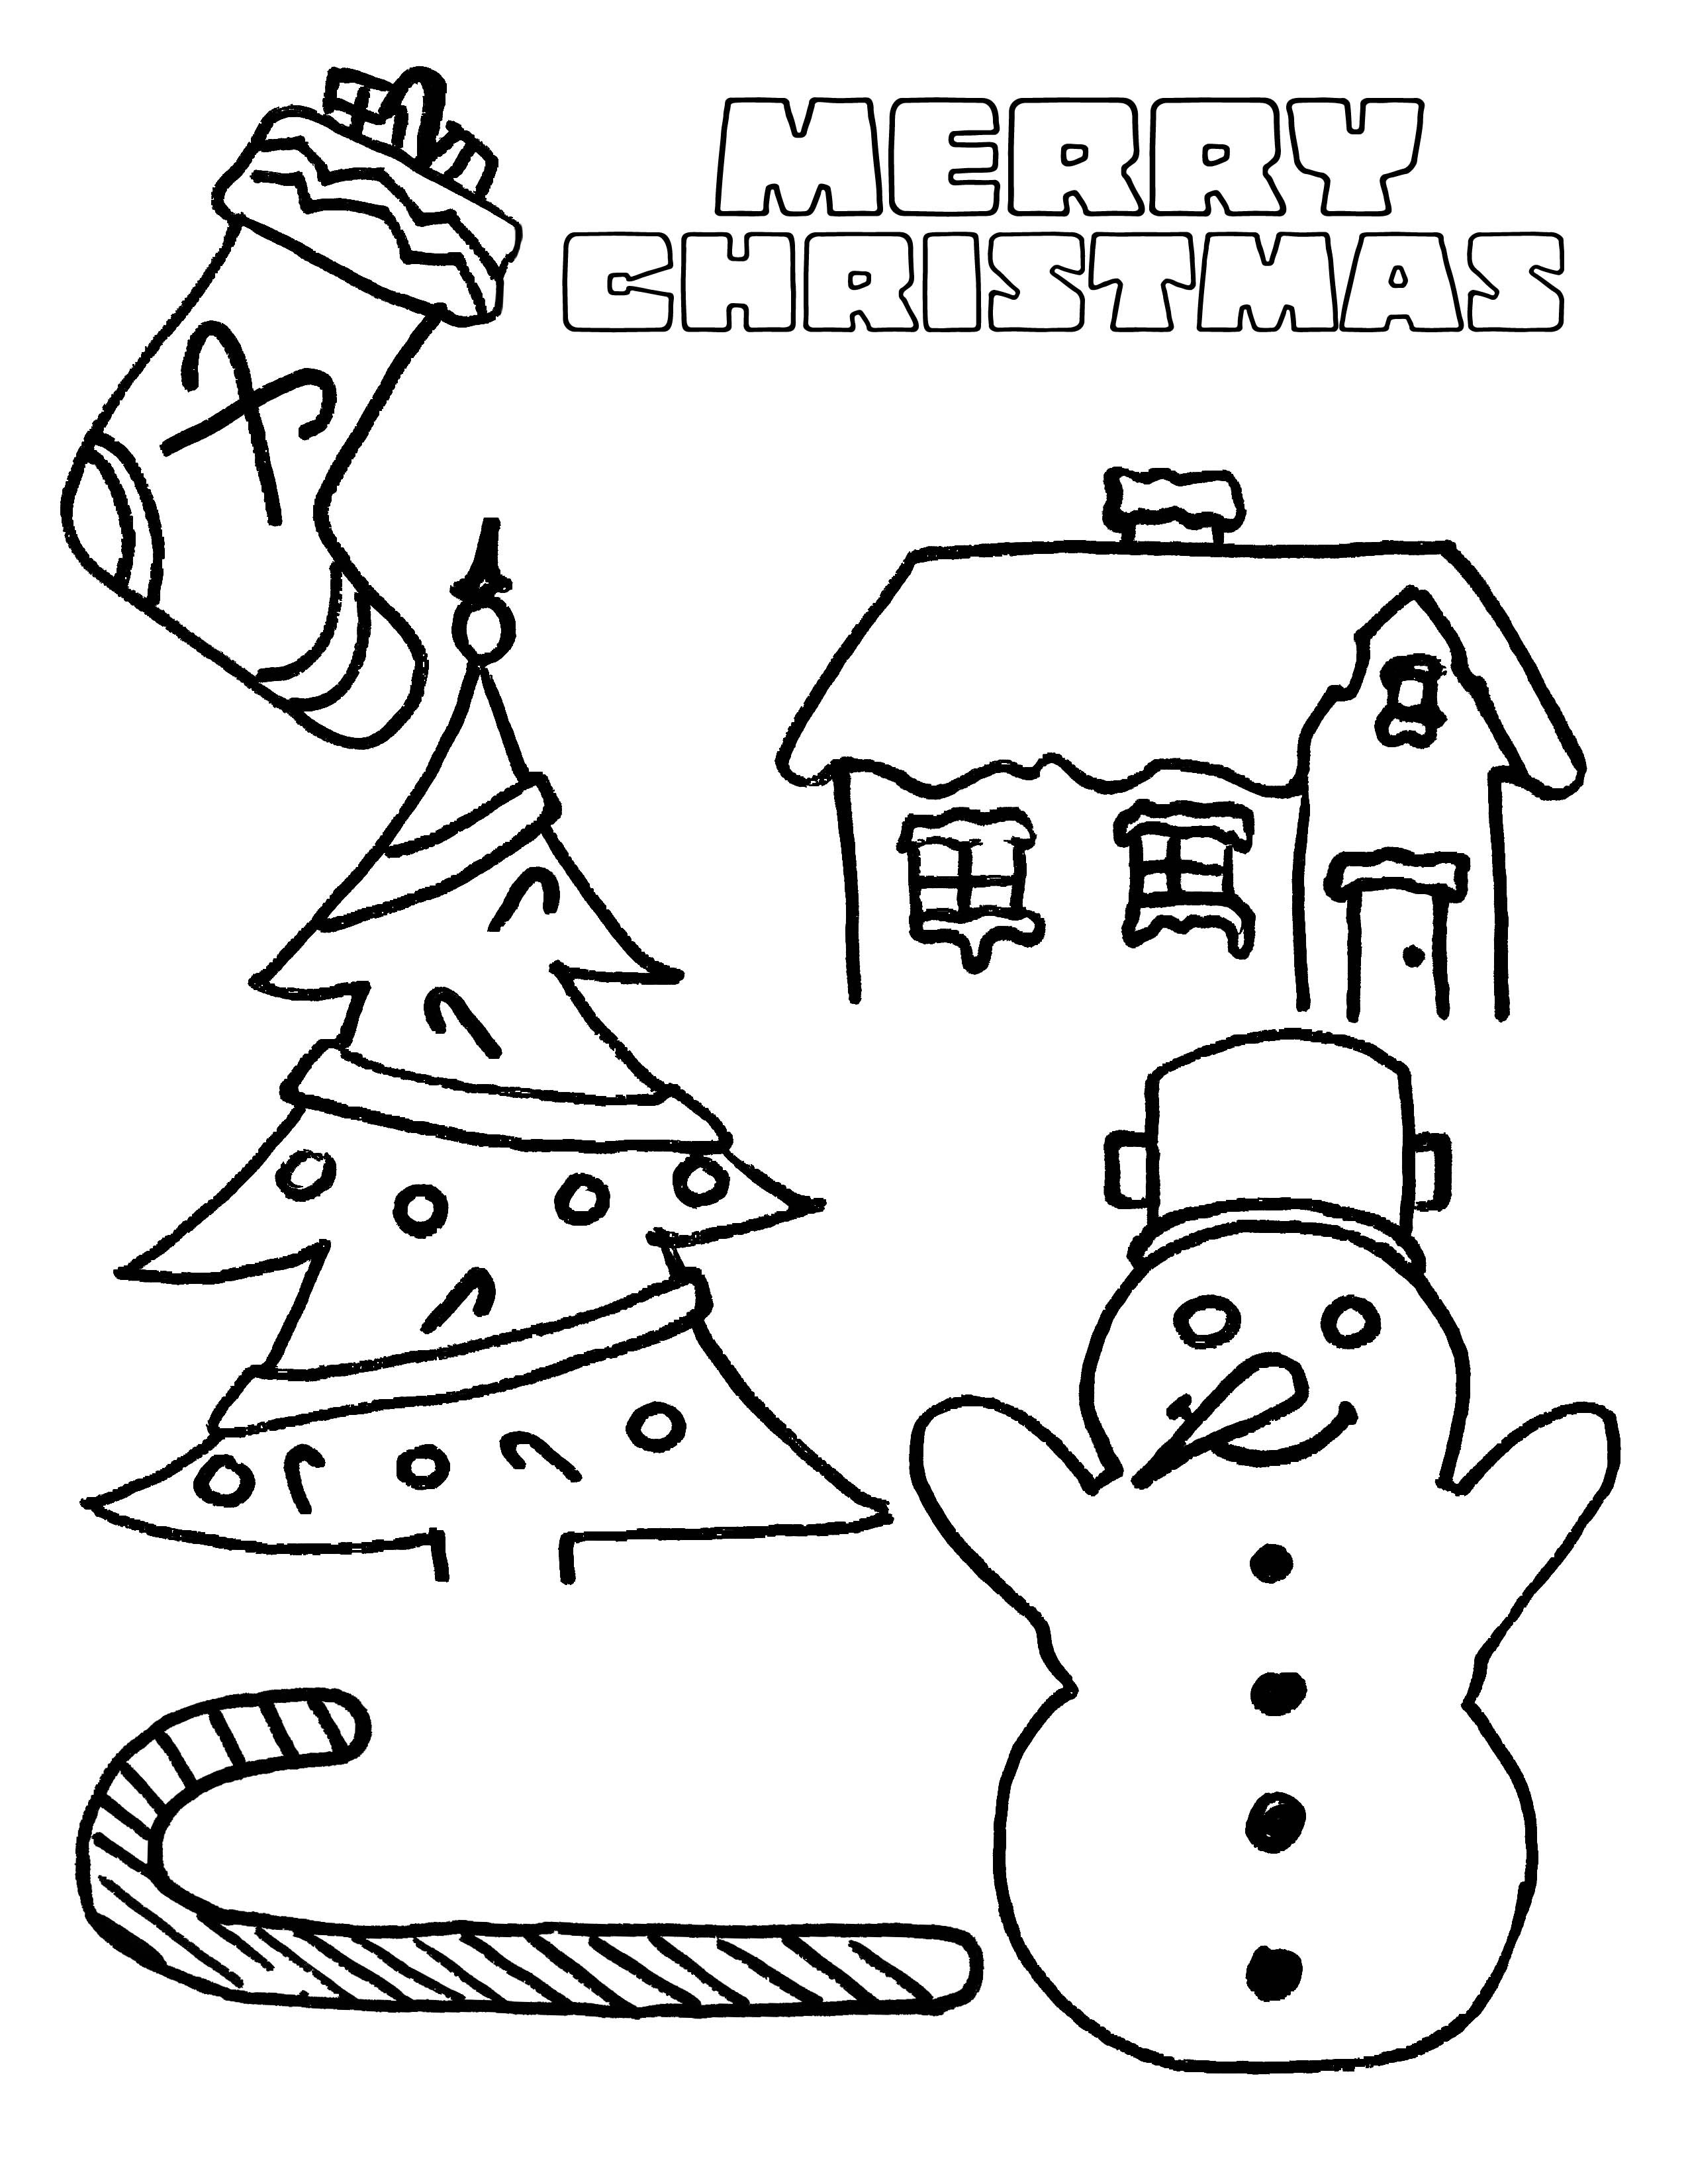 Christmas Coloring Pages For Kids Printable  Party Simplicity free Christmas coloring page for kids